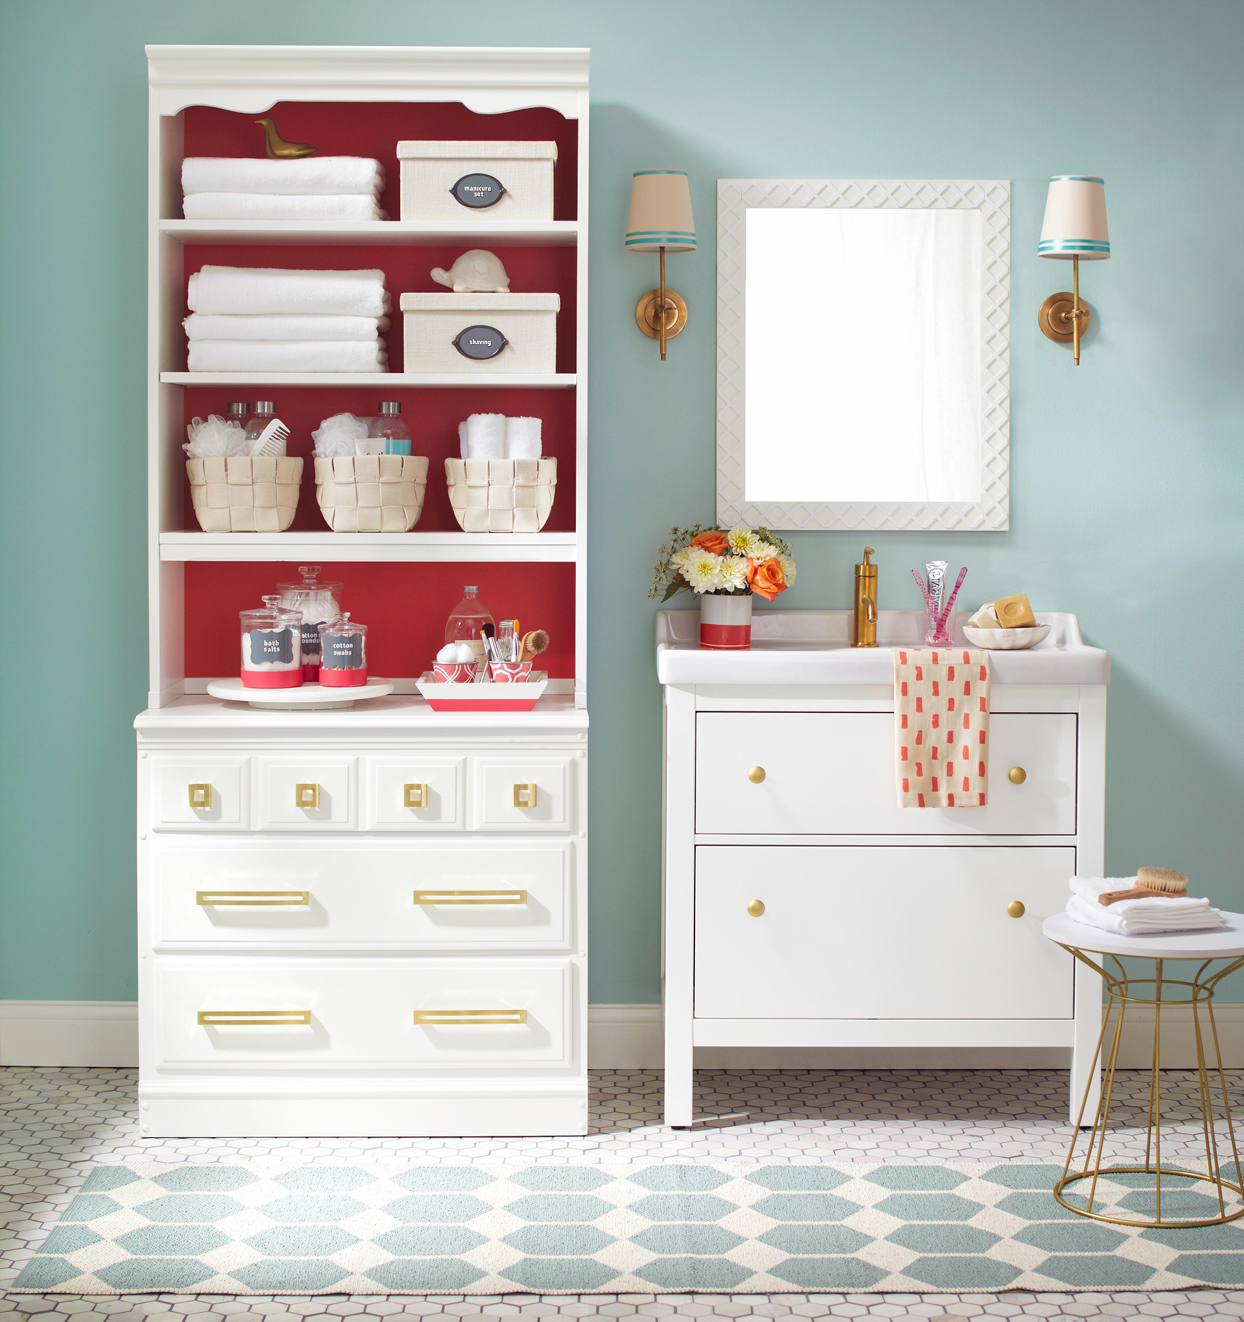 white teal bathroom storage red accents